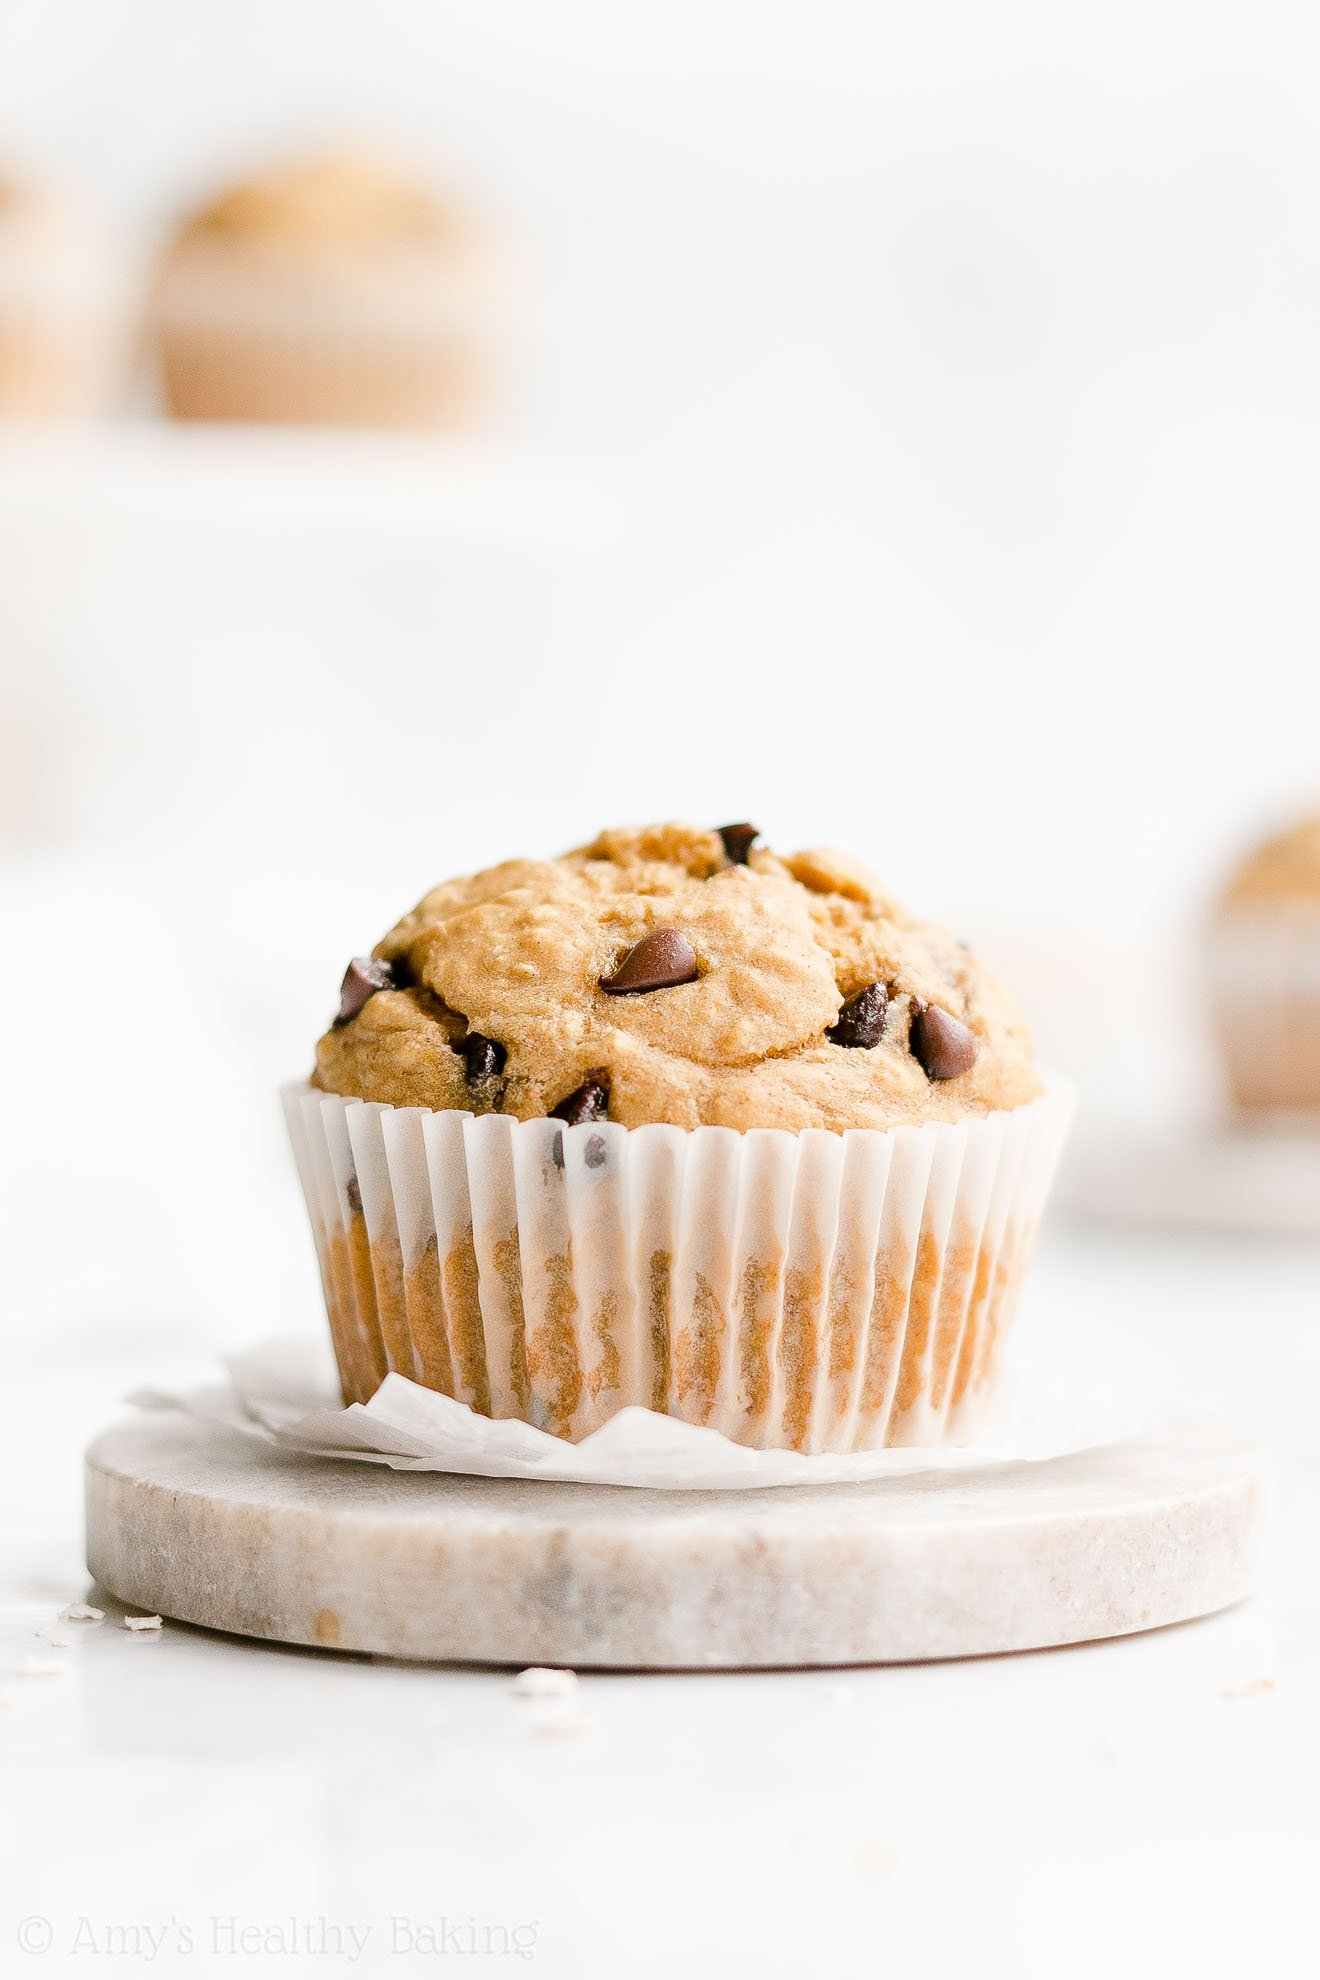 Easy Healthy Moist Greek Yogurt Banana Chocolate Chip Oatmeal Muffins